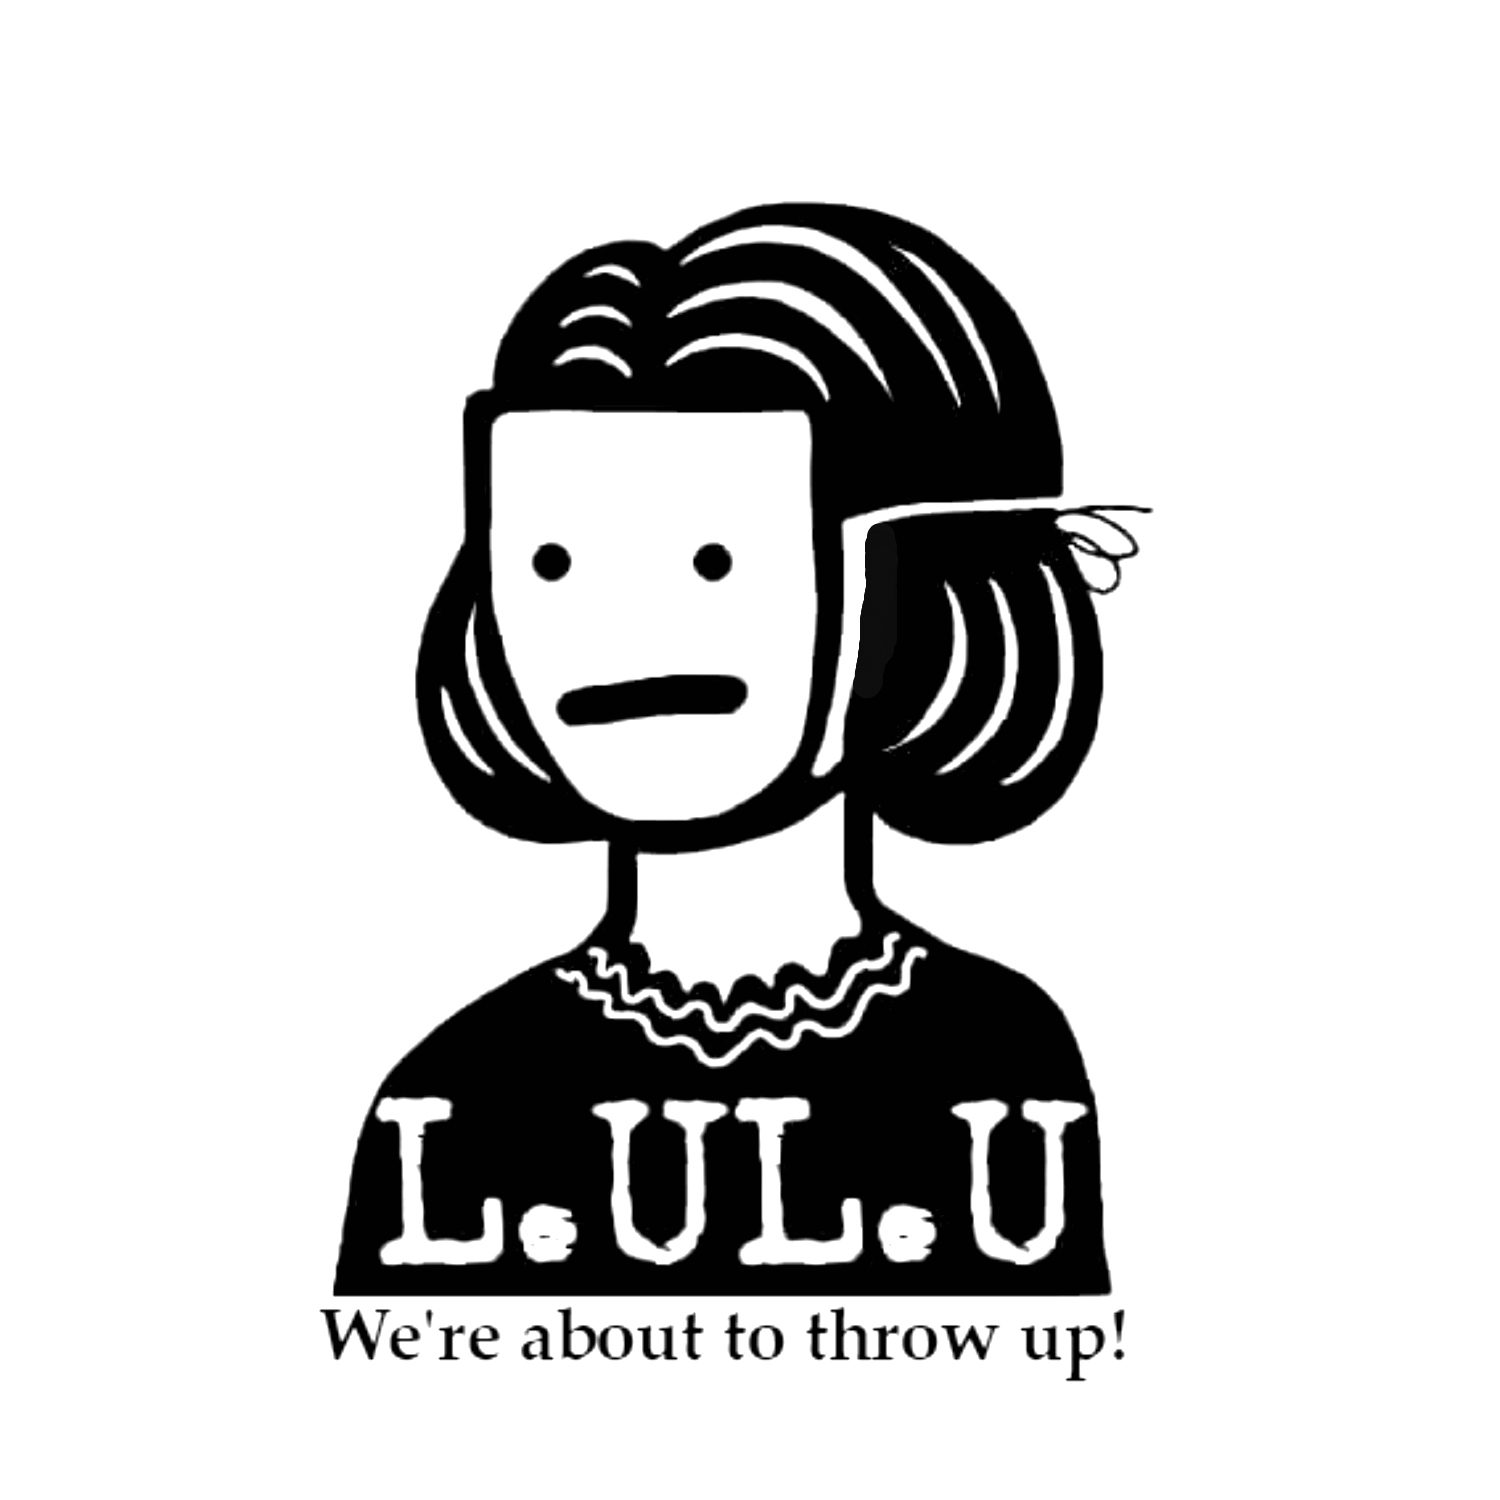 L.U.L.U - We're about to throw up